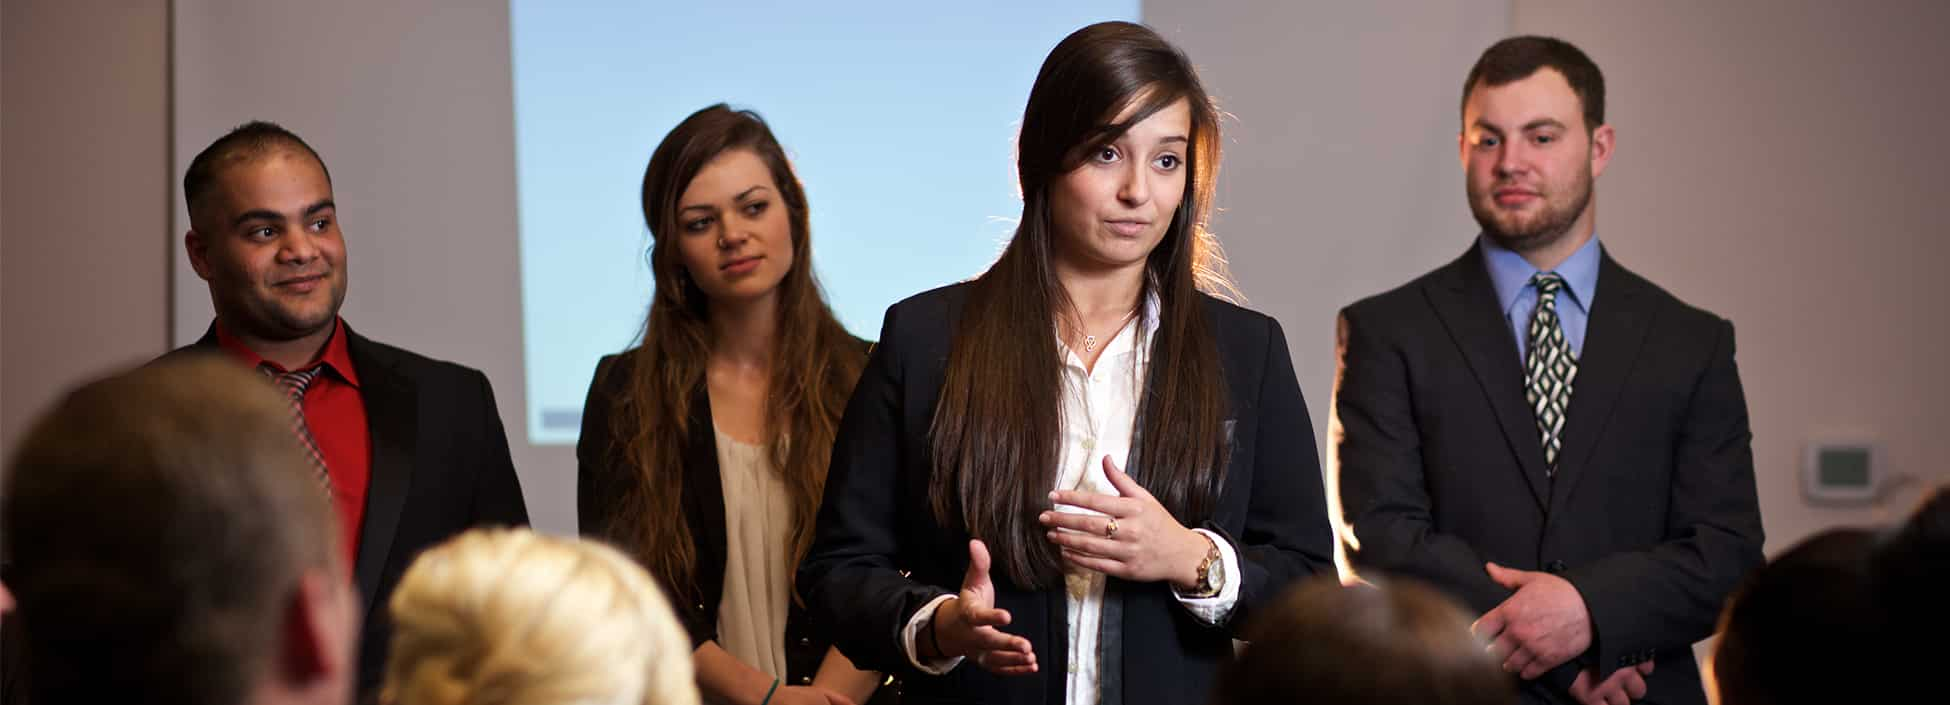 Students get practice with business presentations, business technology and management